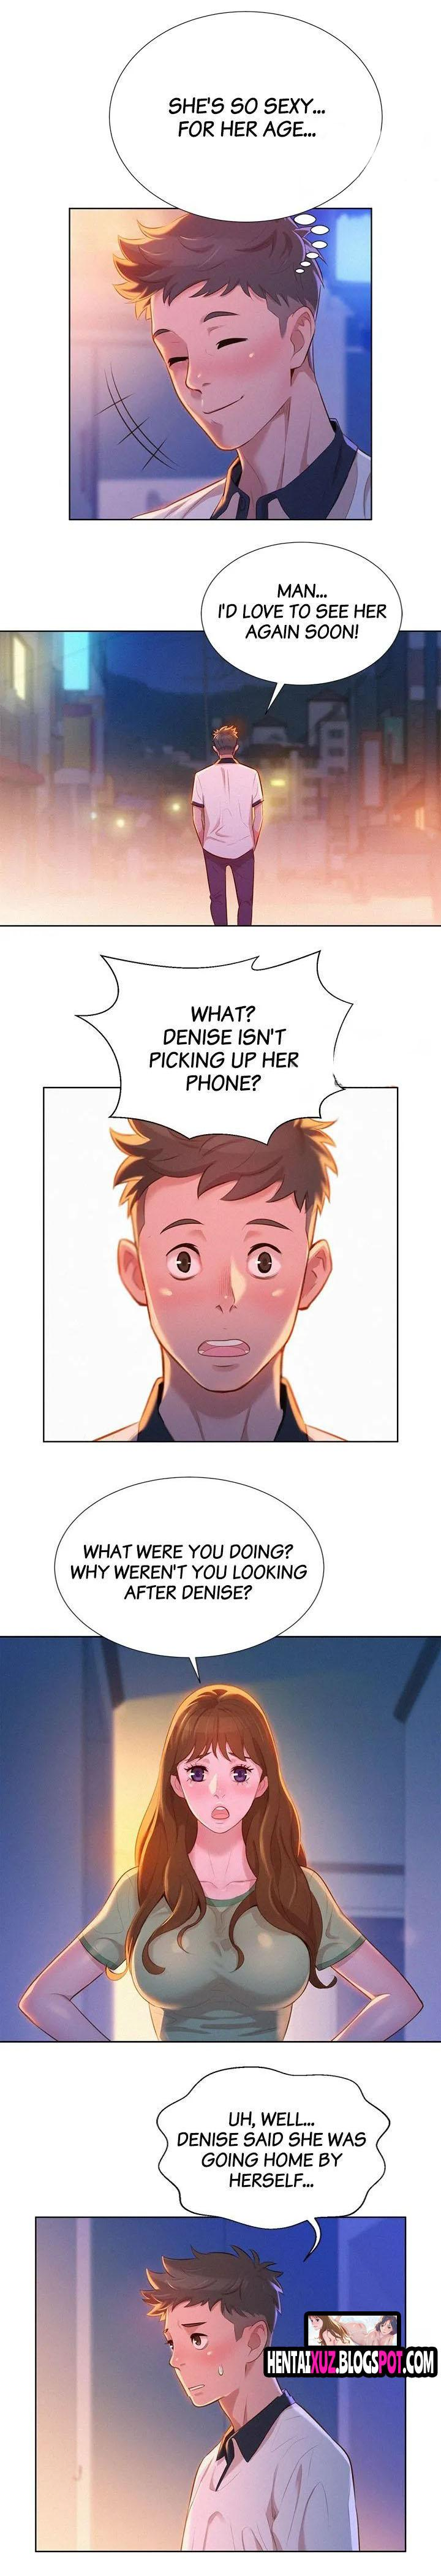 What do you Take me For? Ch.26/? 117